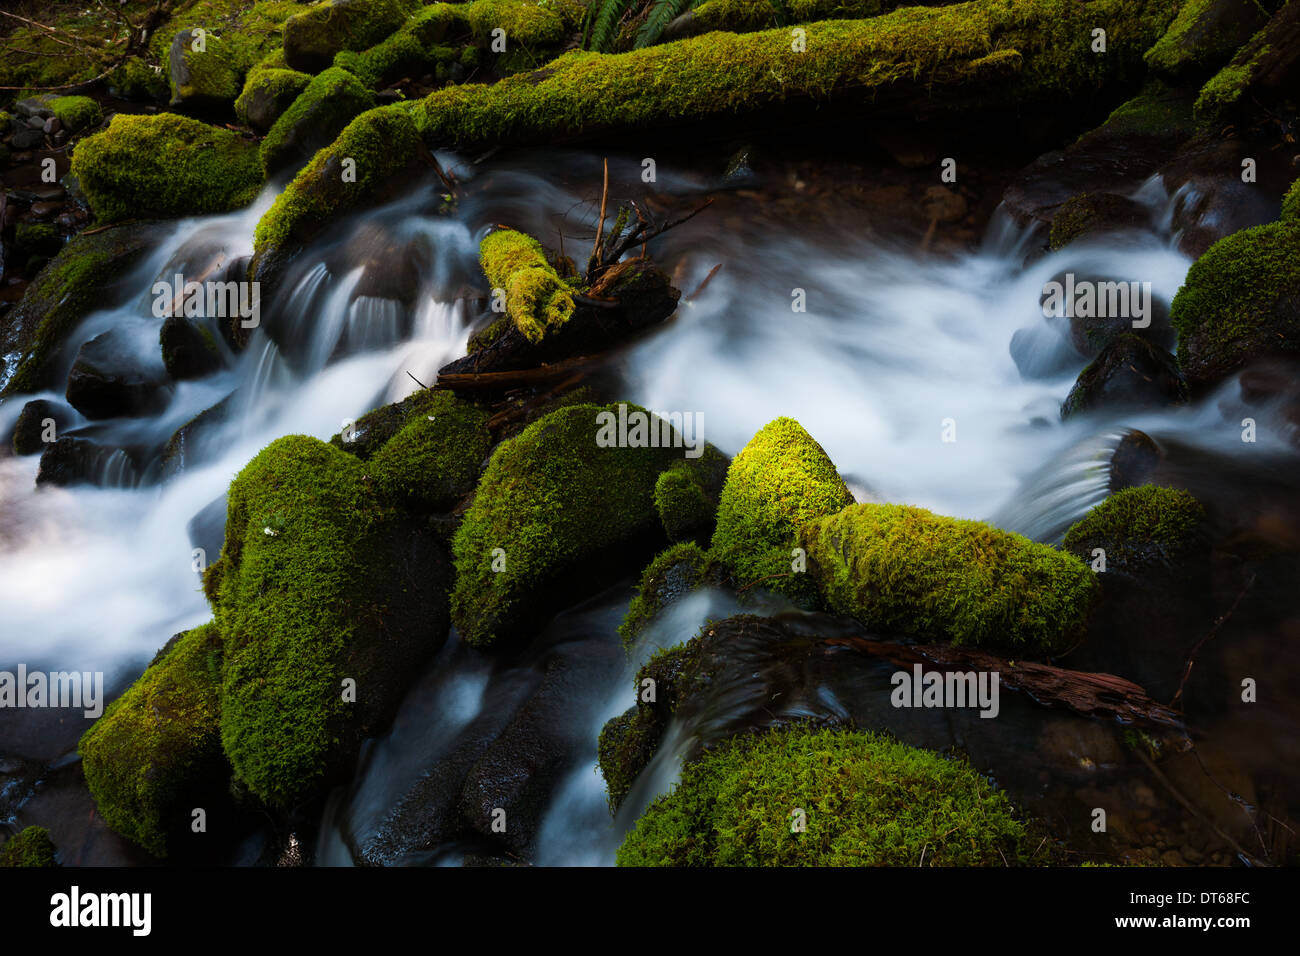 Barnes Creek with water flowing over mossy rocks in Olympic National Park, Washington, USA - Stock Image